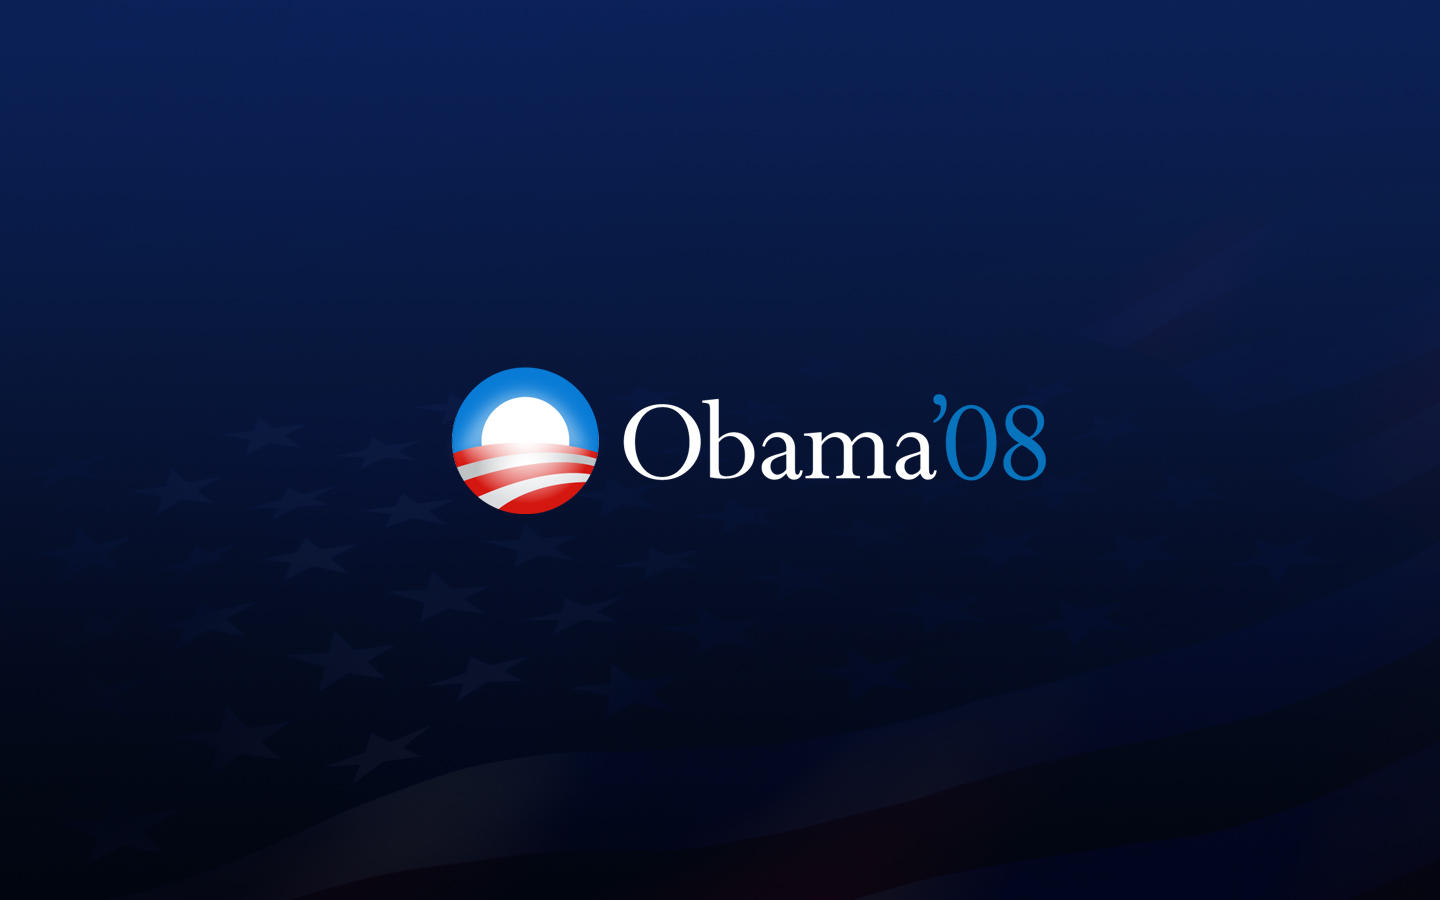 Barack Obama 08 Wallpaper by michaelmknight